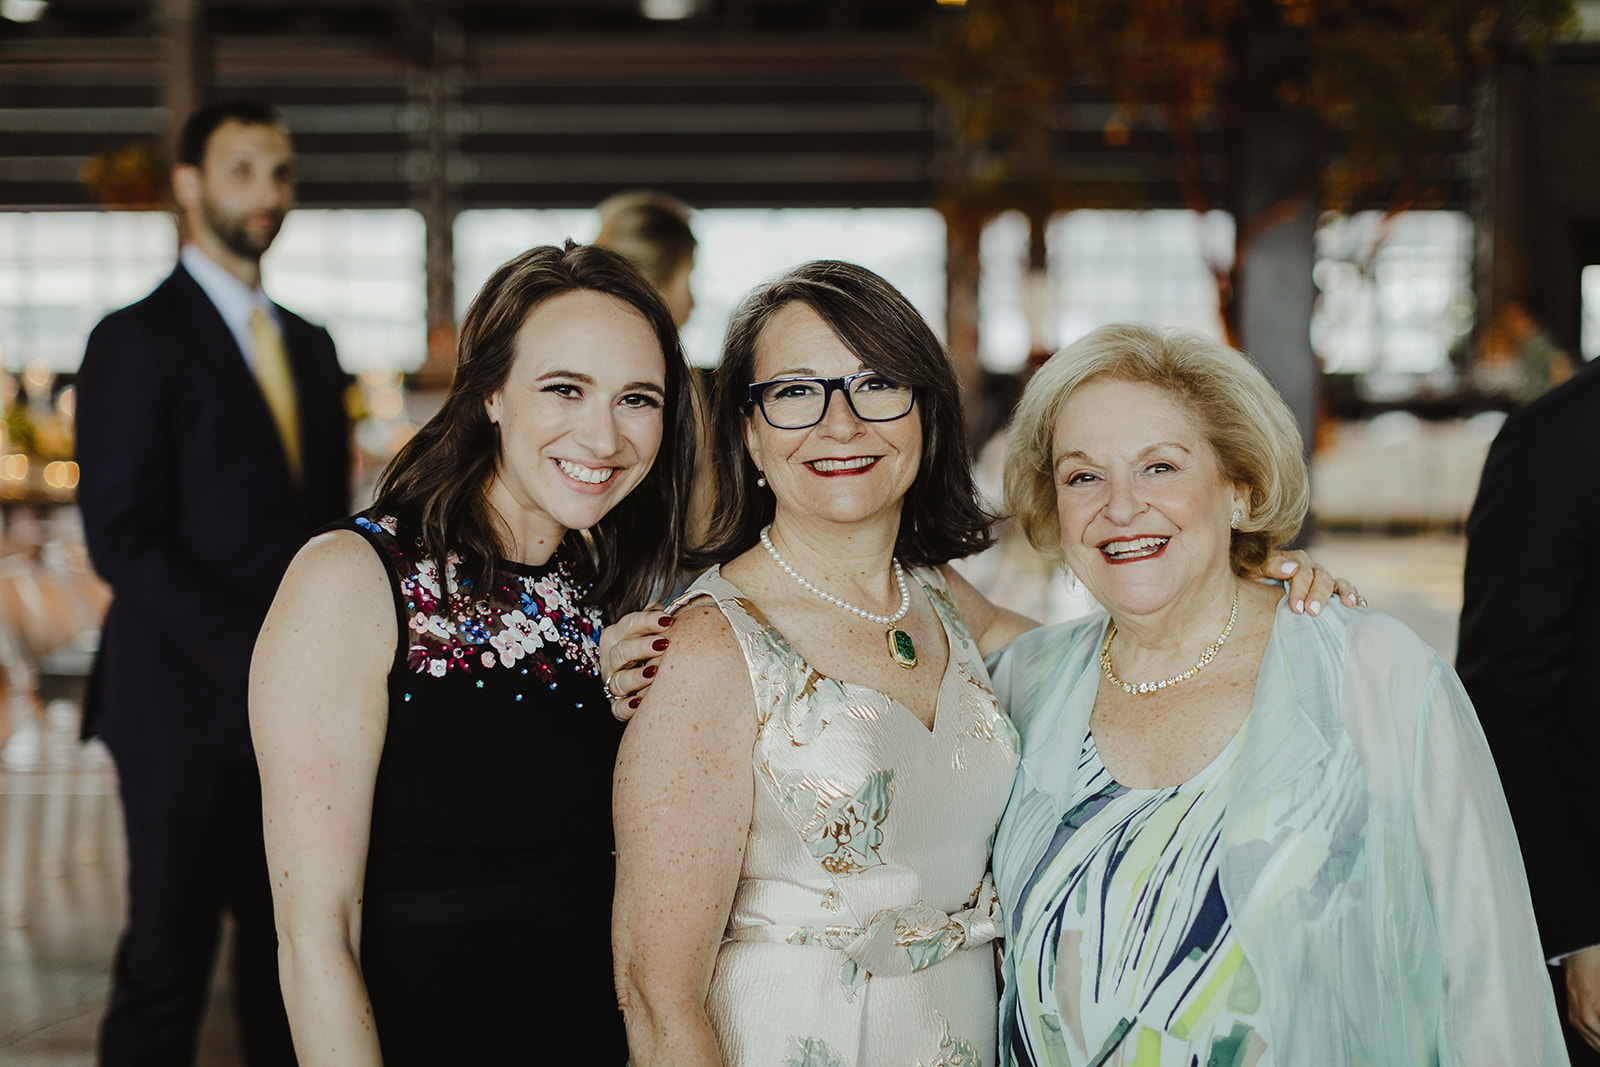 Daughter, mom, grandma - three generations of women, photo by Jill DeVries Photography - How mom can help with wedding planning - Leah E. Moss Designs